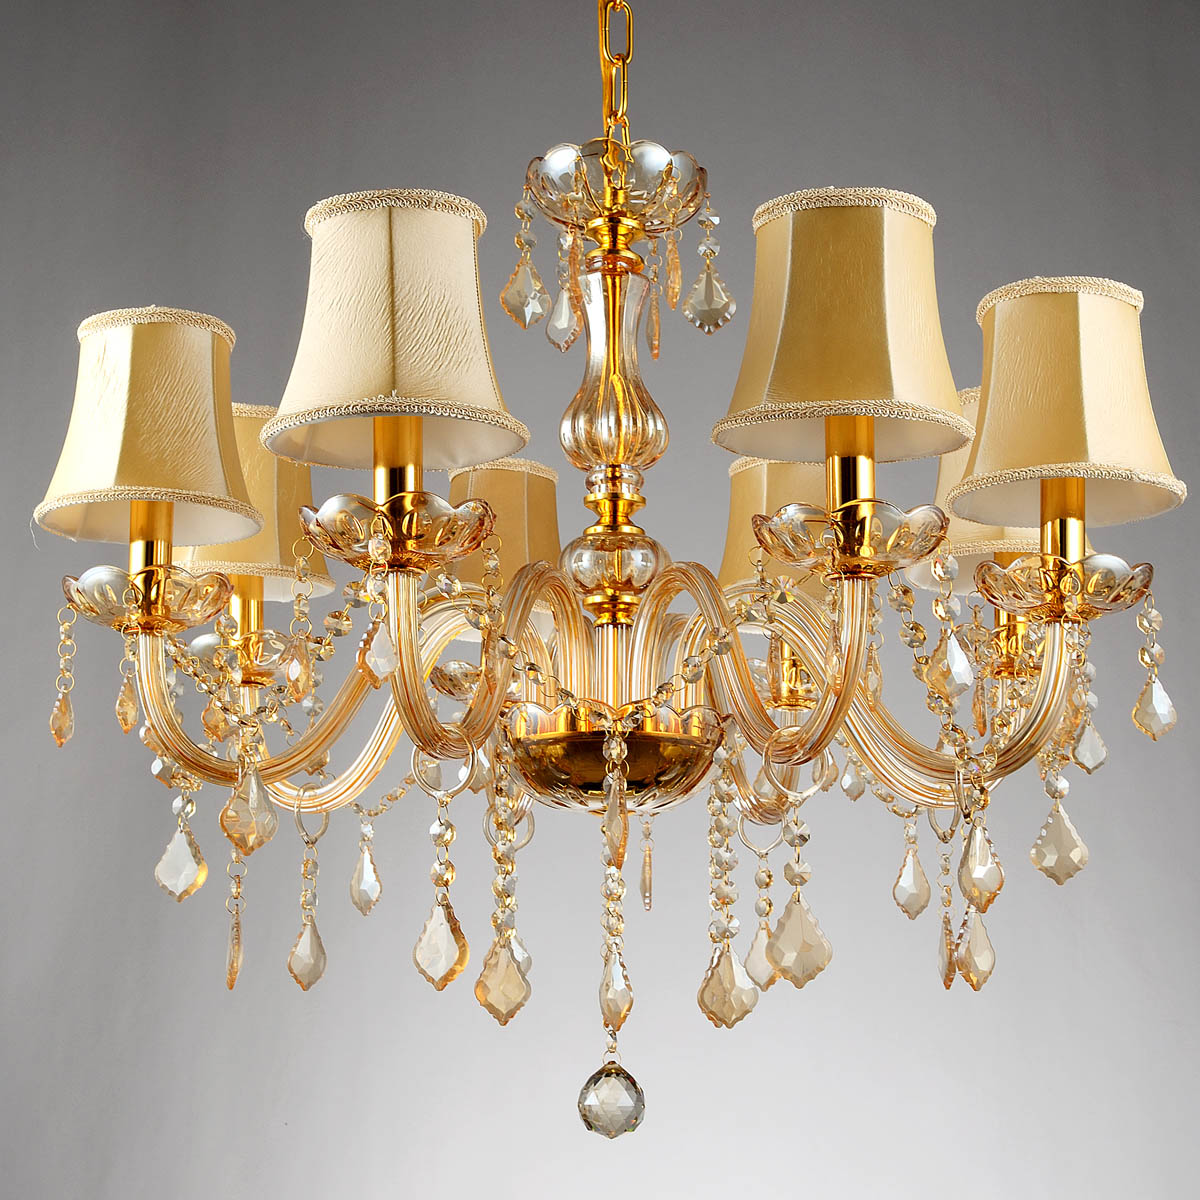 Free ship 6/8 Arms Fashion crystal Chandelier lighting Bedroom pendant Chandelier champa ...